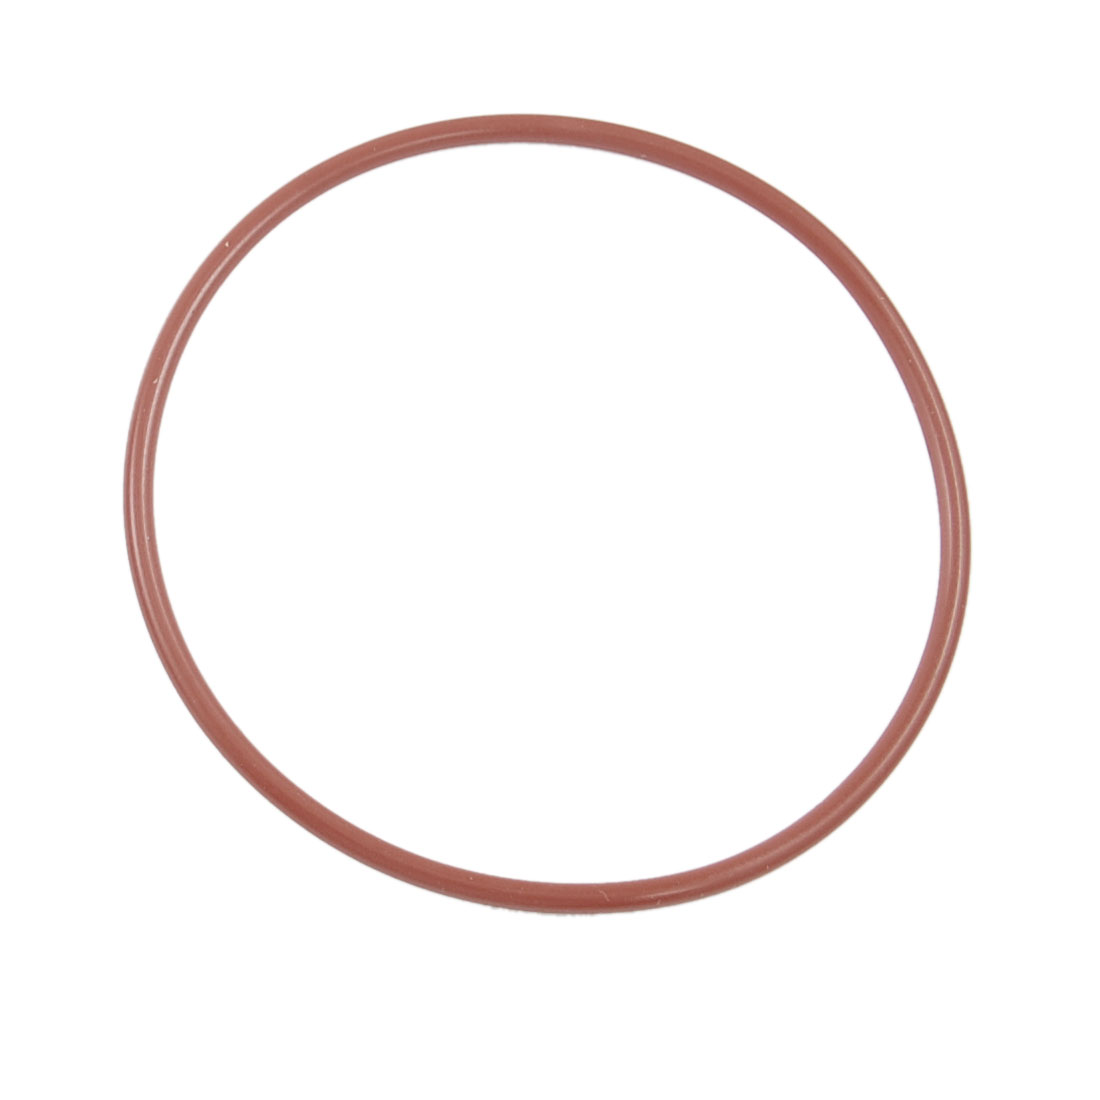 10 Pcs 65mm OD 2.5mm Thickness Dark Red Silicone O Rings Oil Seals Gasket